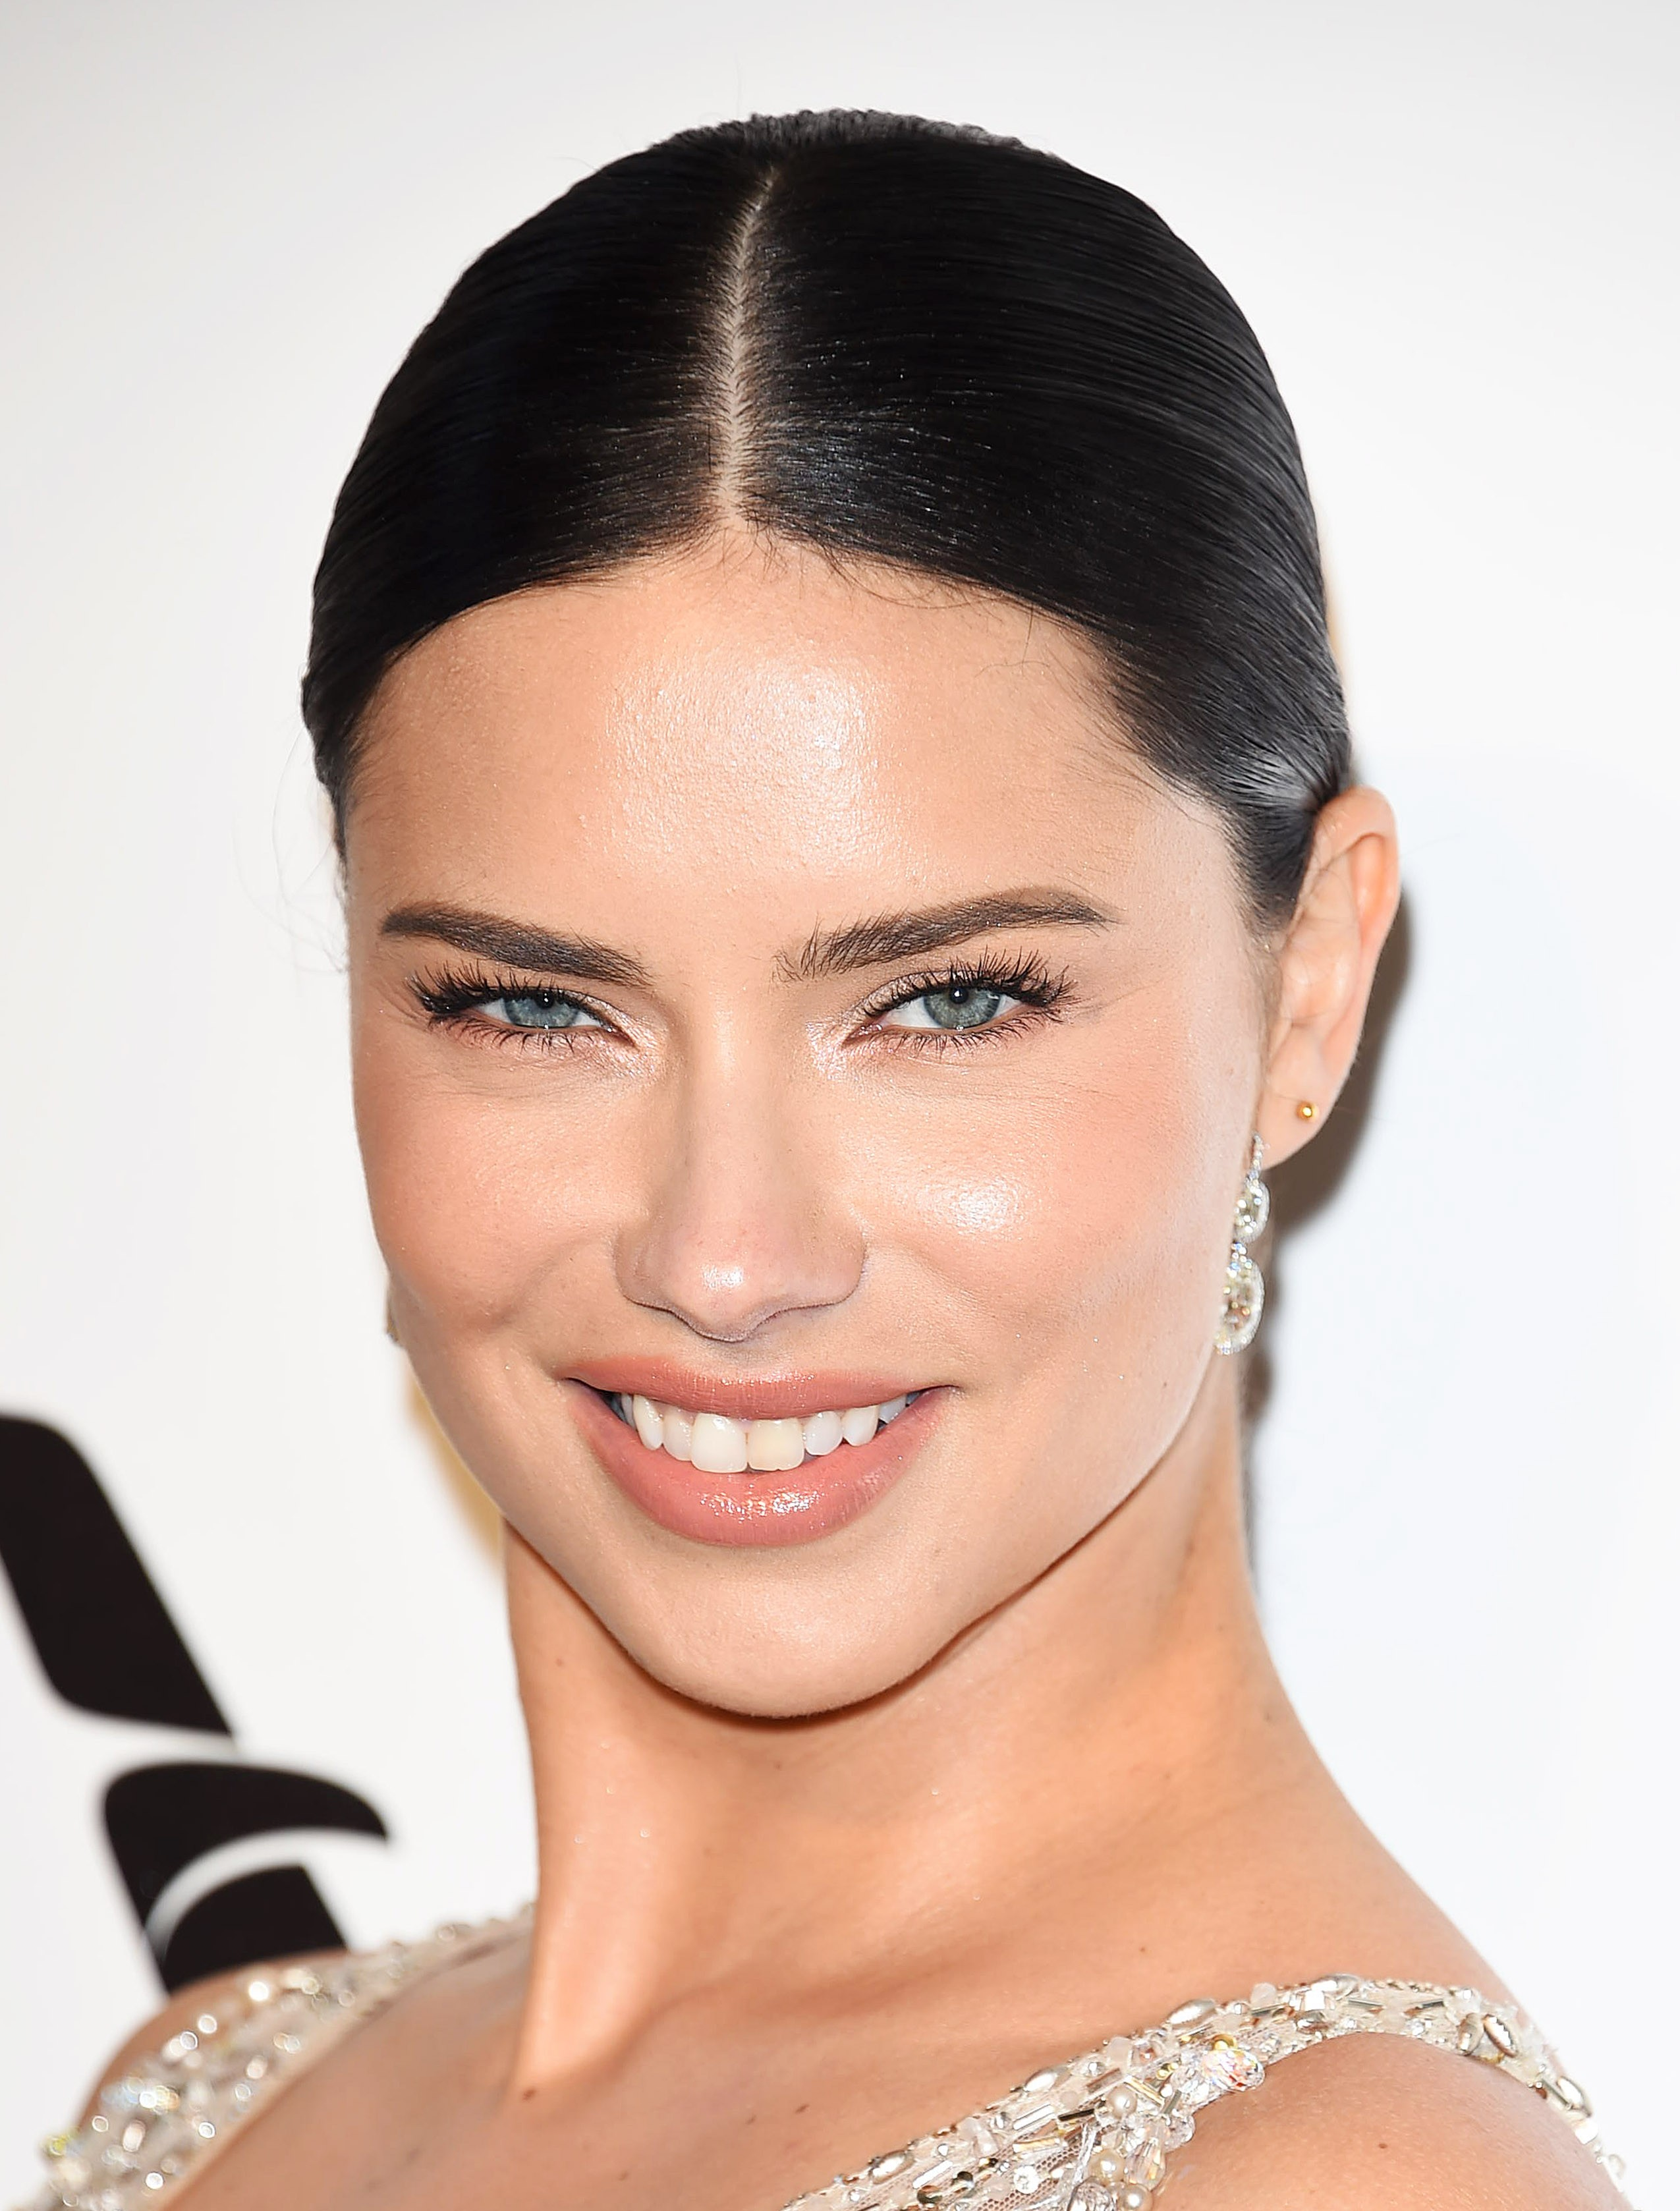 Adriana Lima Pictures from Academy Award Event - Sexy Actress Pictures | Hot Actress Pictures - ActressSnaps.com